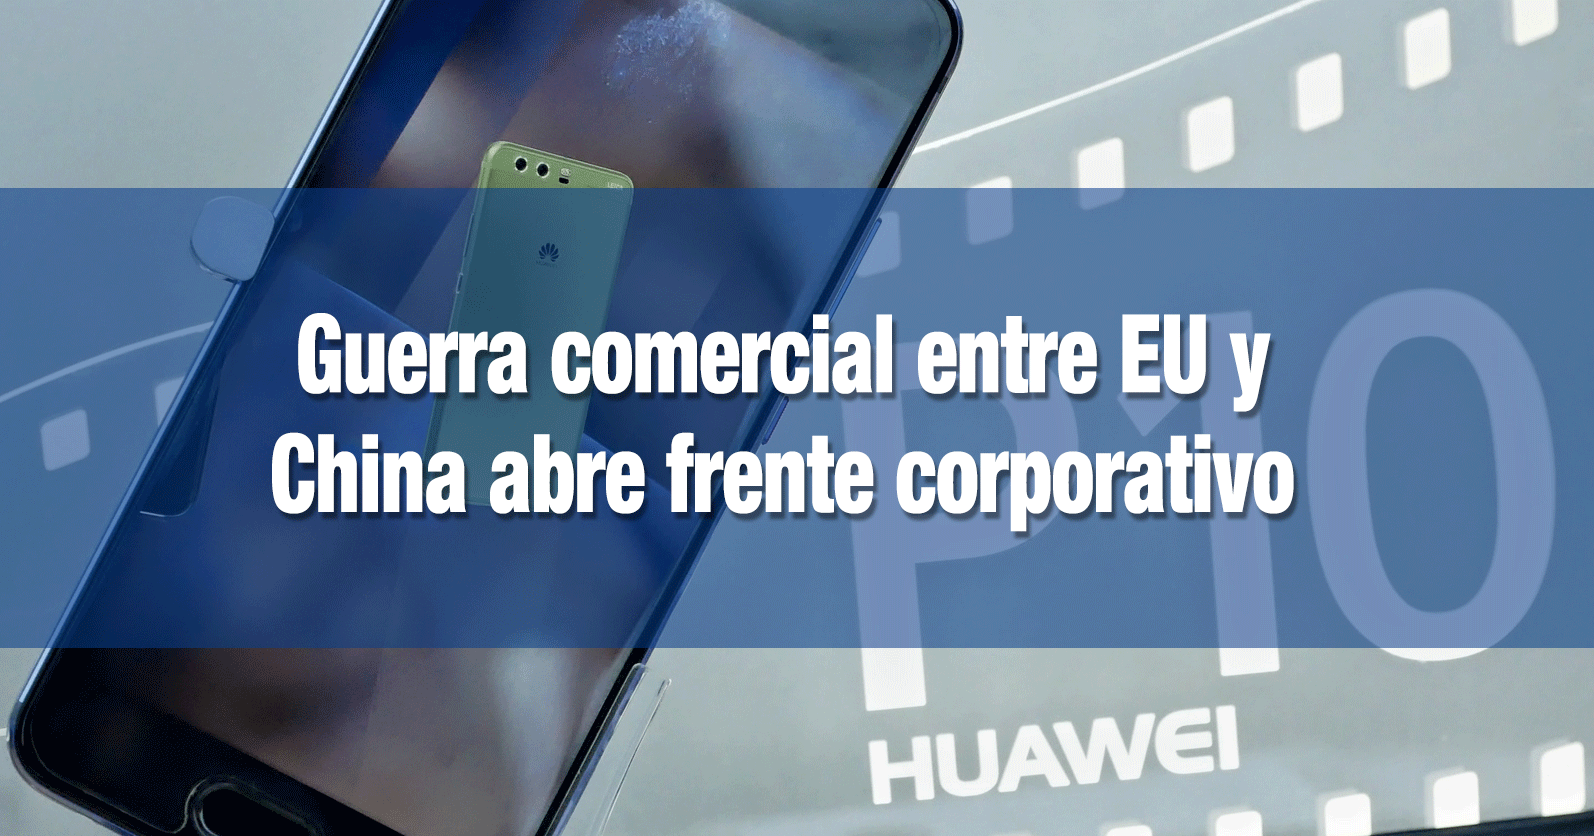 Guerra comercial entre EU y China abre frente corporativo